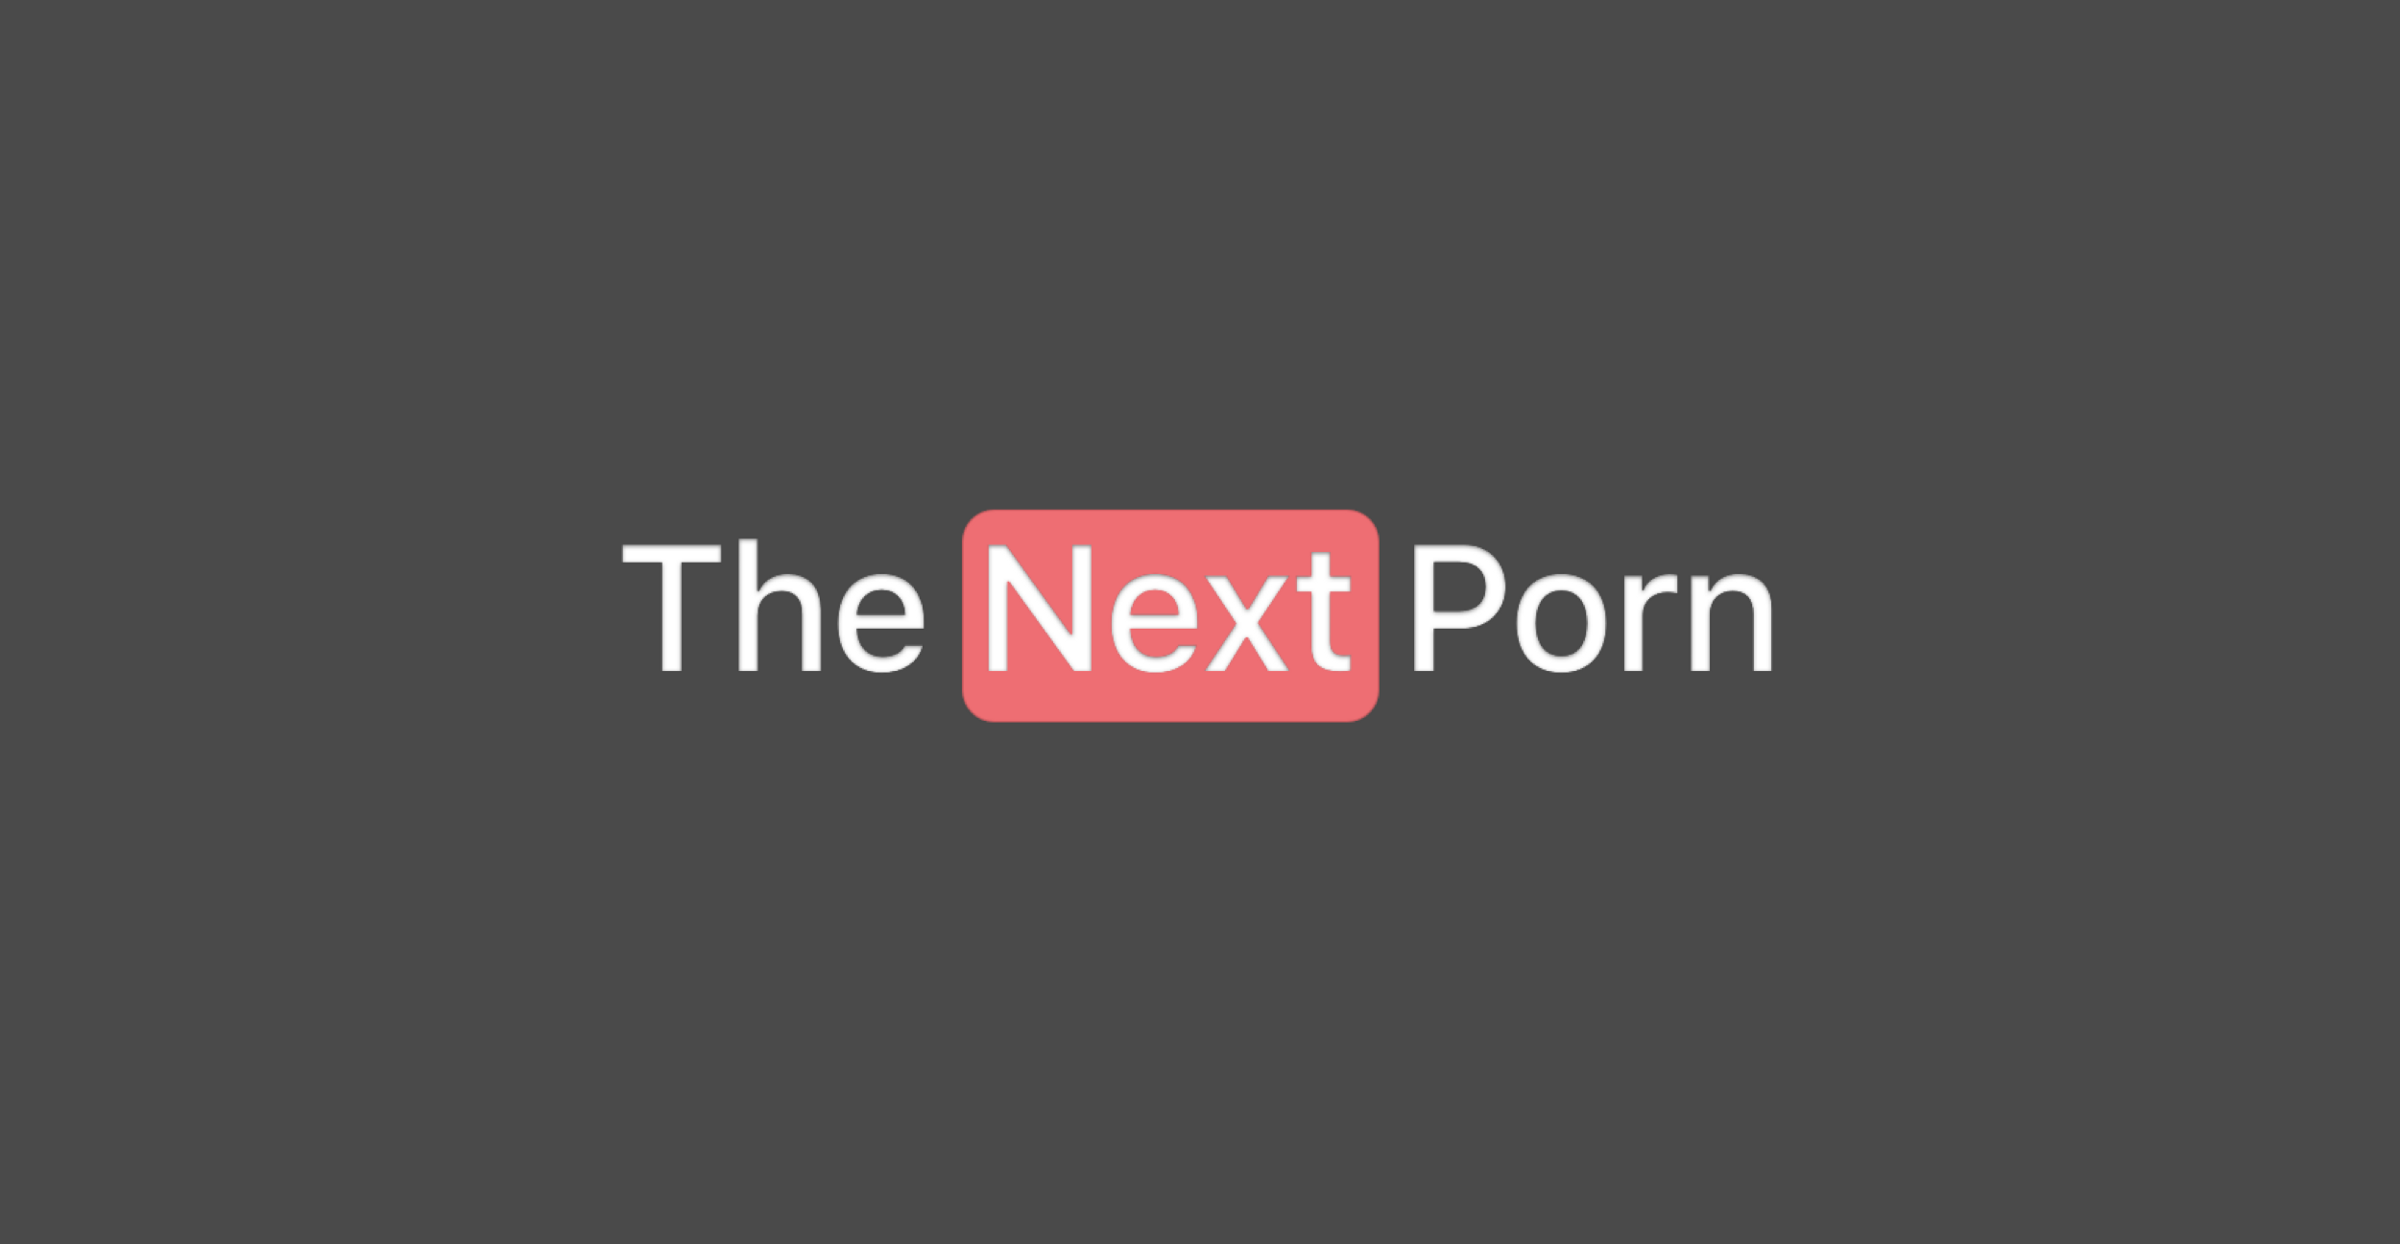 The Next Porn: How to design a service without having money - By